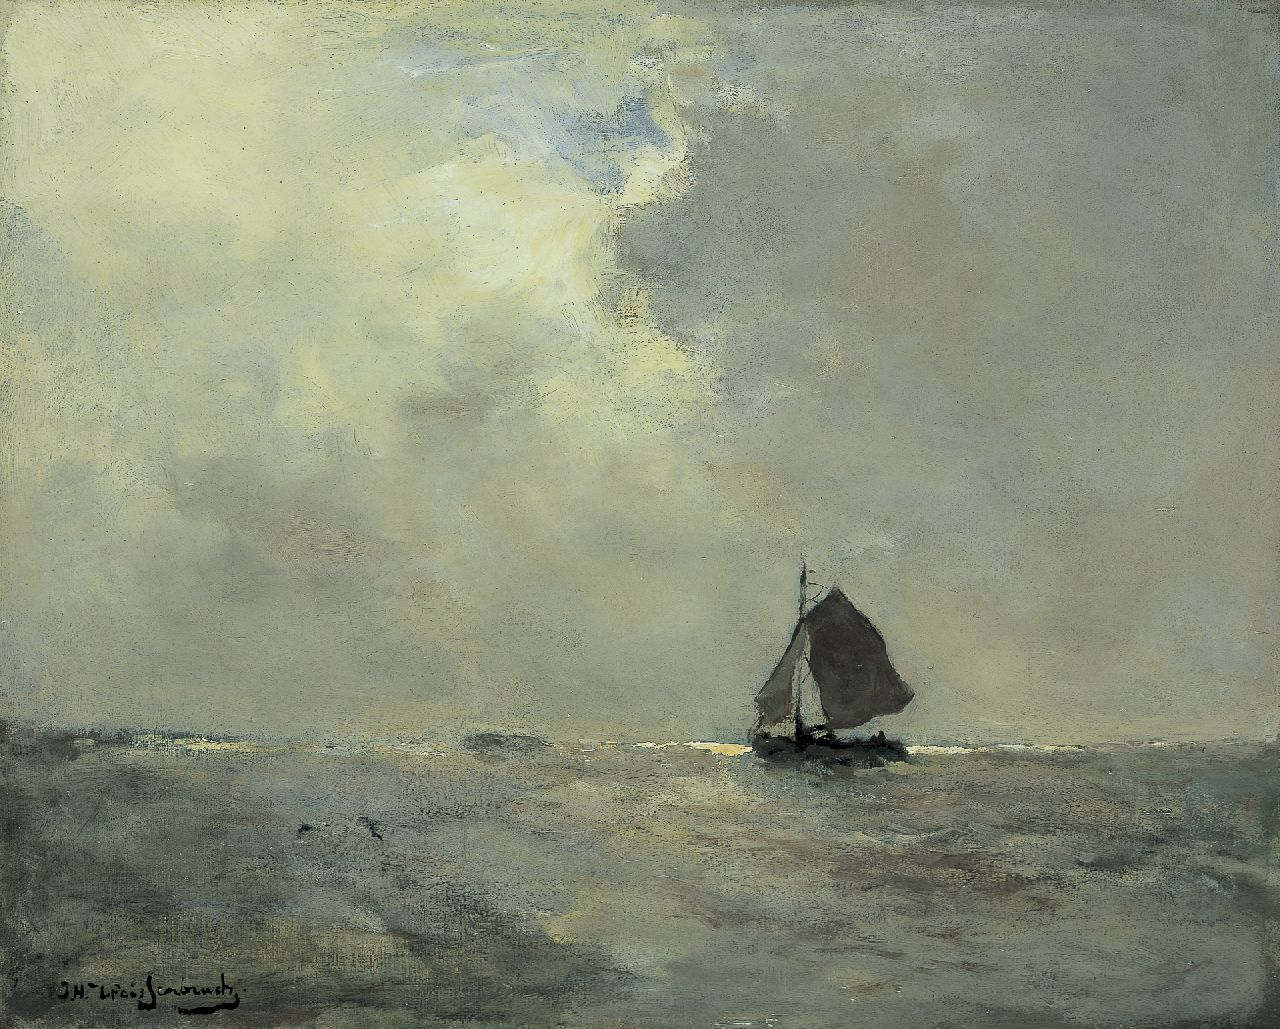 Weissenbruch H.J.  | Hendrik Johannes 'J.H.' Weissenbruch, A sailing vessel, oil on canvas 39.6 x 49.3 cm, signed l.l.